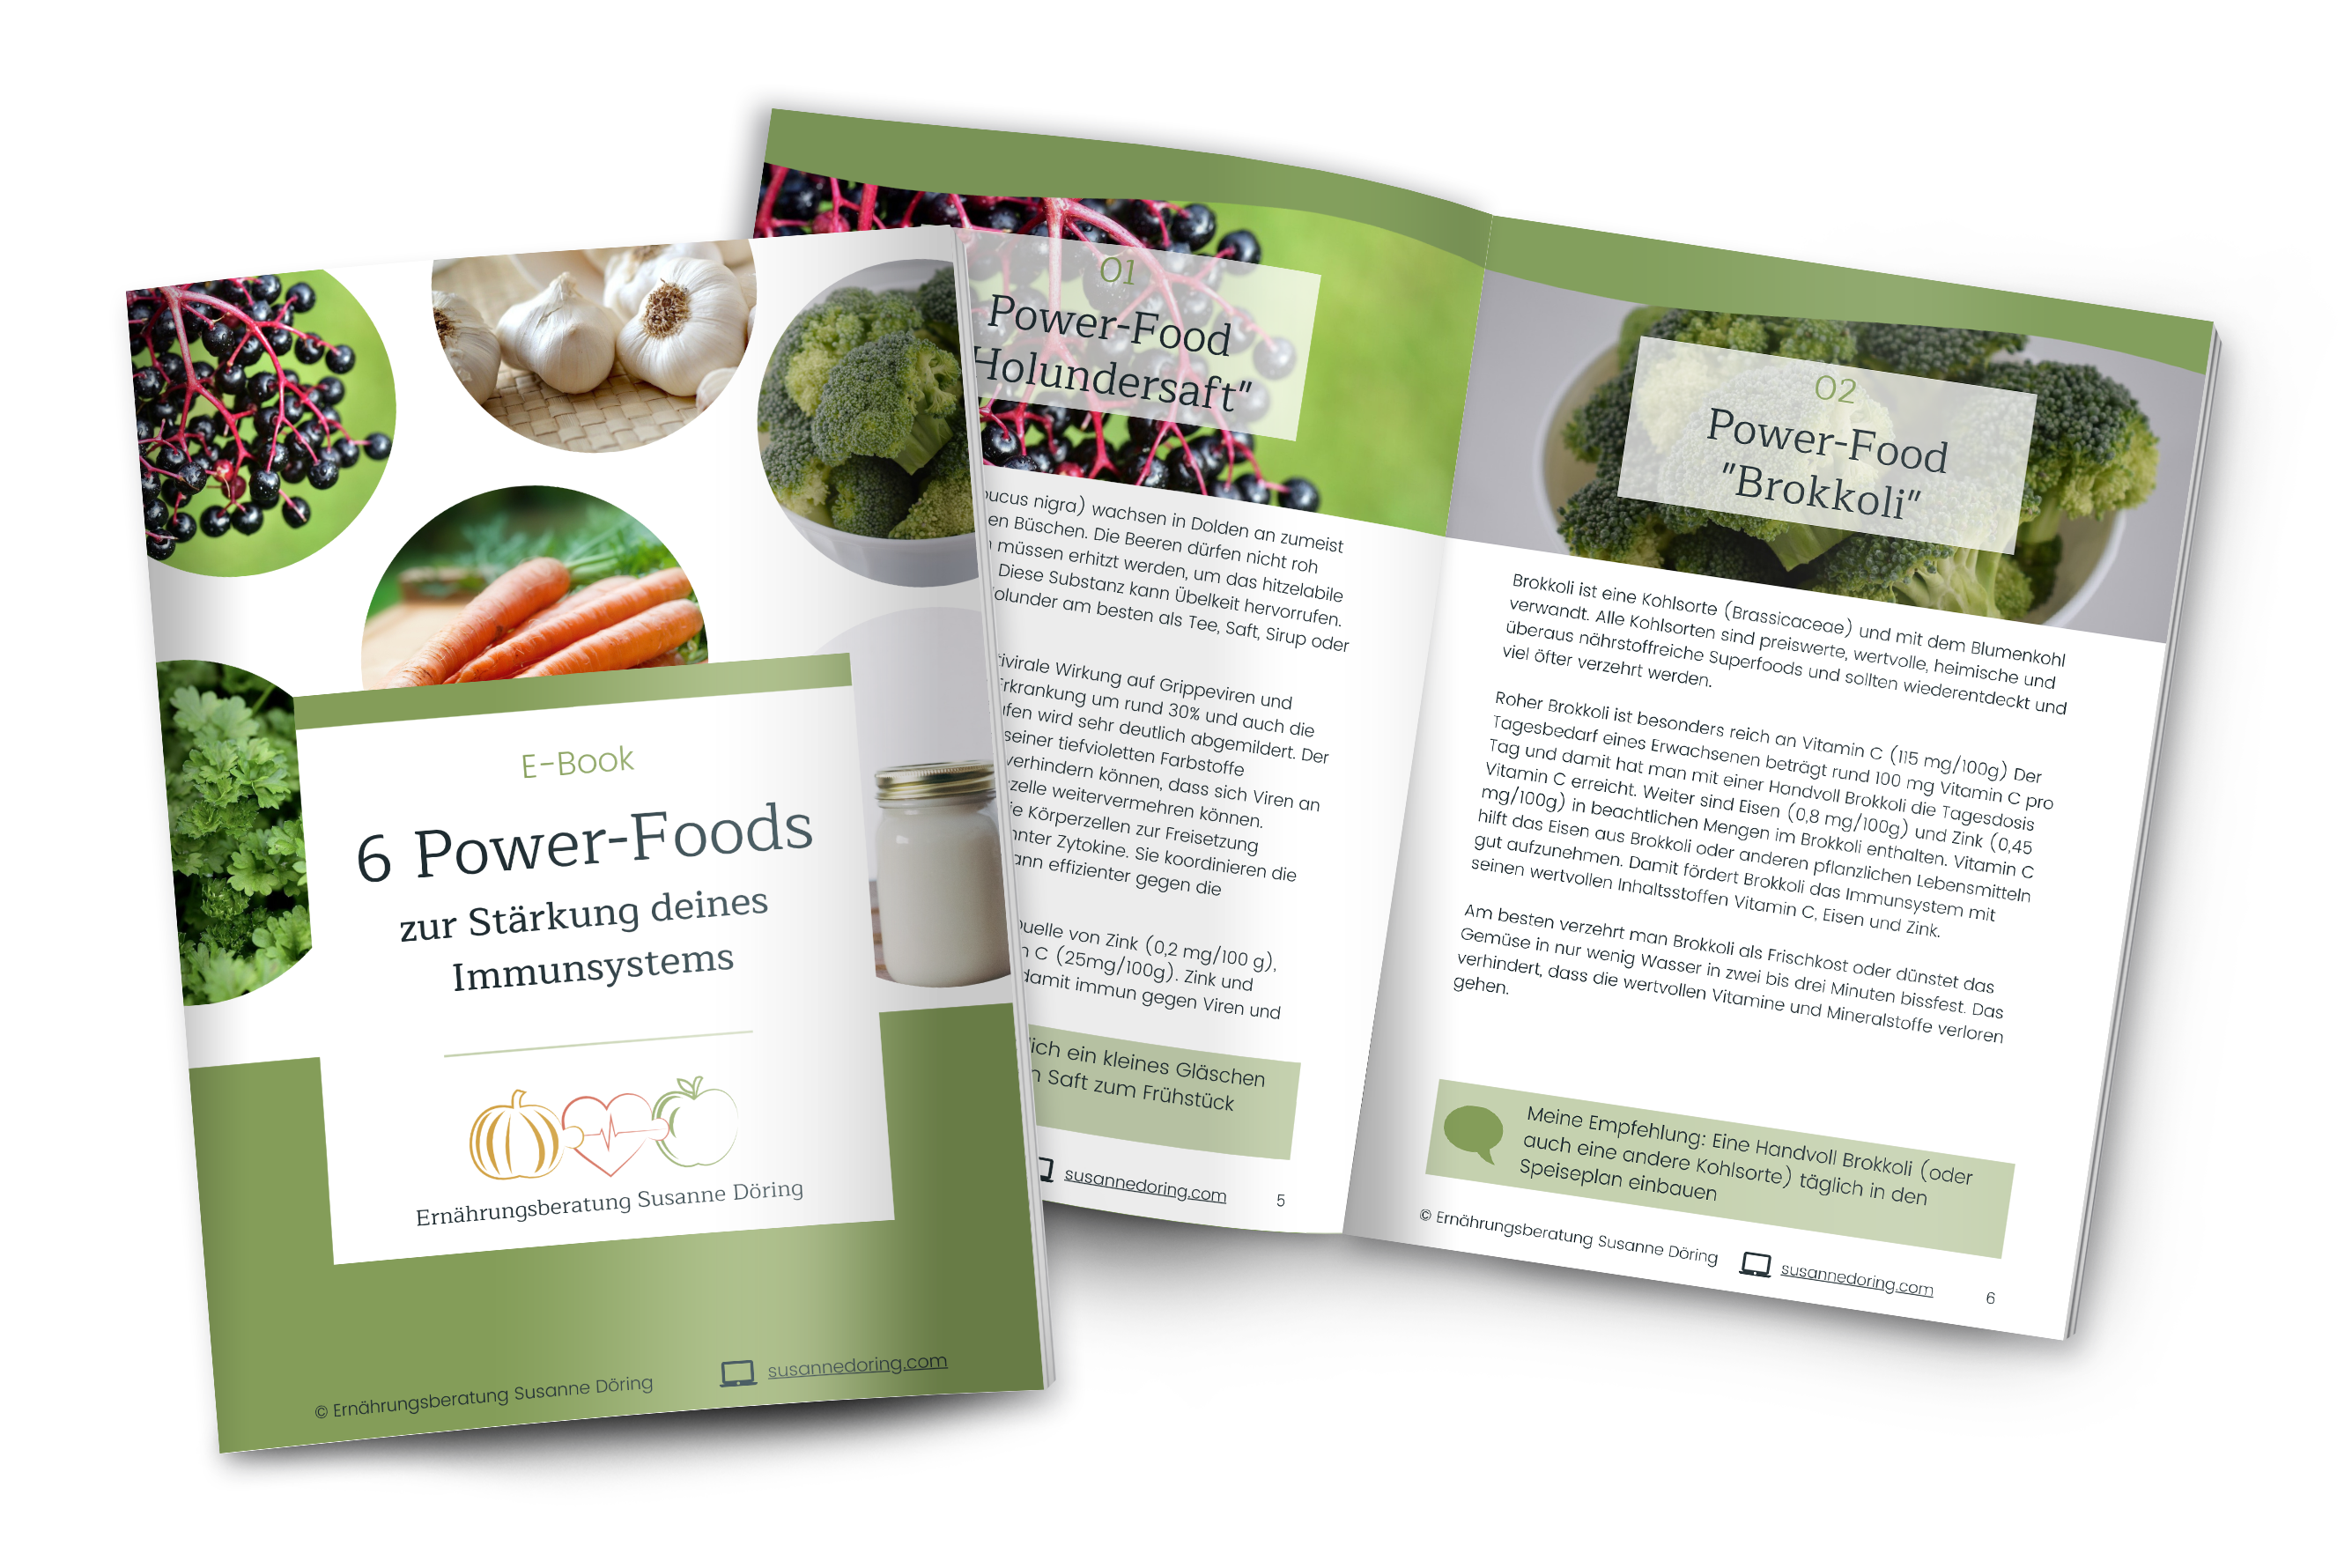 ebook-6-power-foods-immunsystem